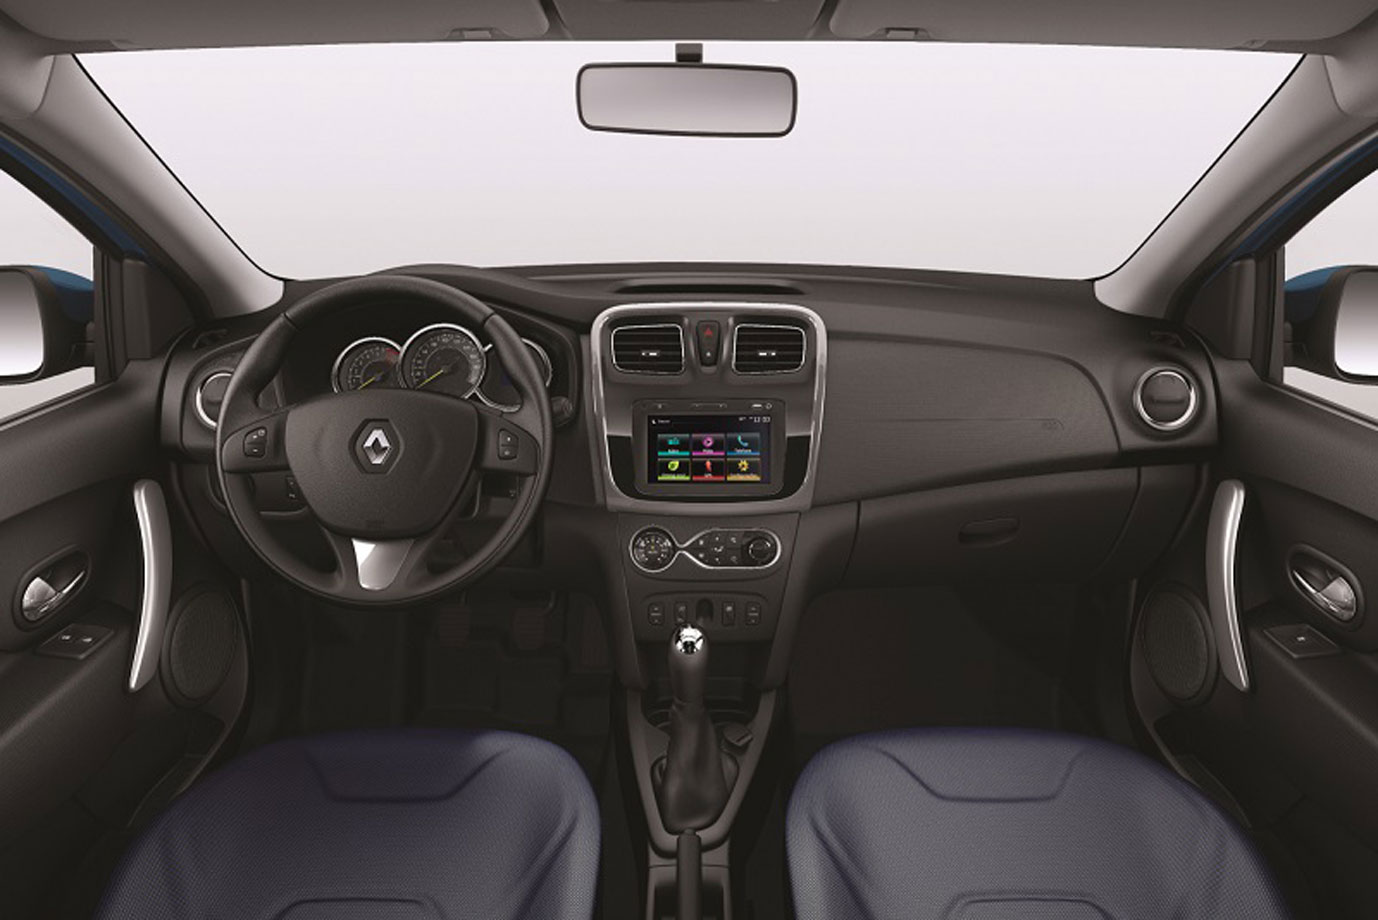 Acura Of Reno >> 2016 Renault Logan – pictures, information and specs - Auto-Database.com